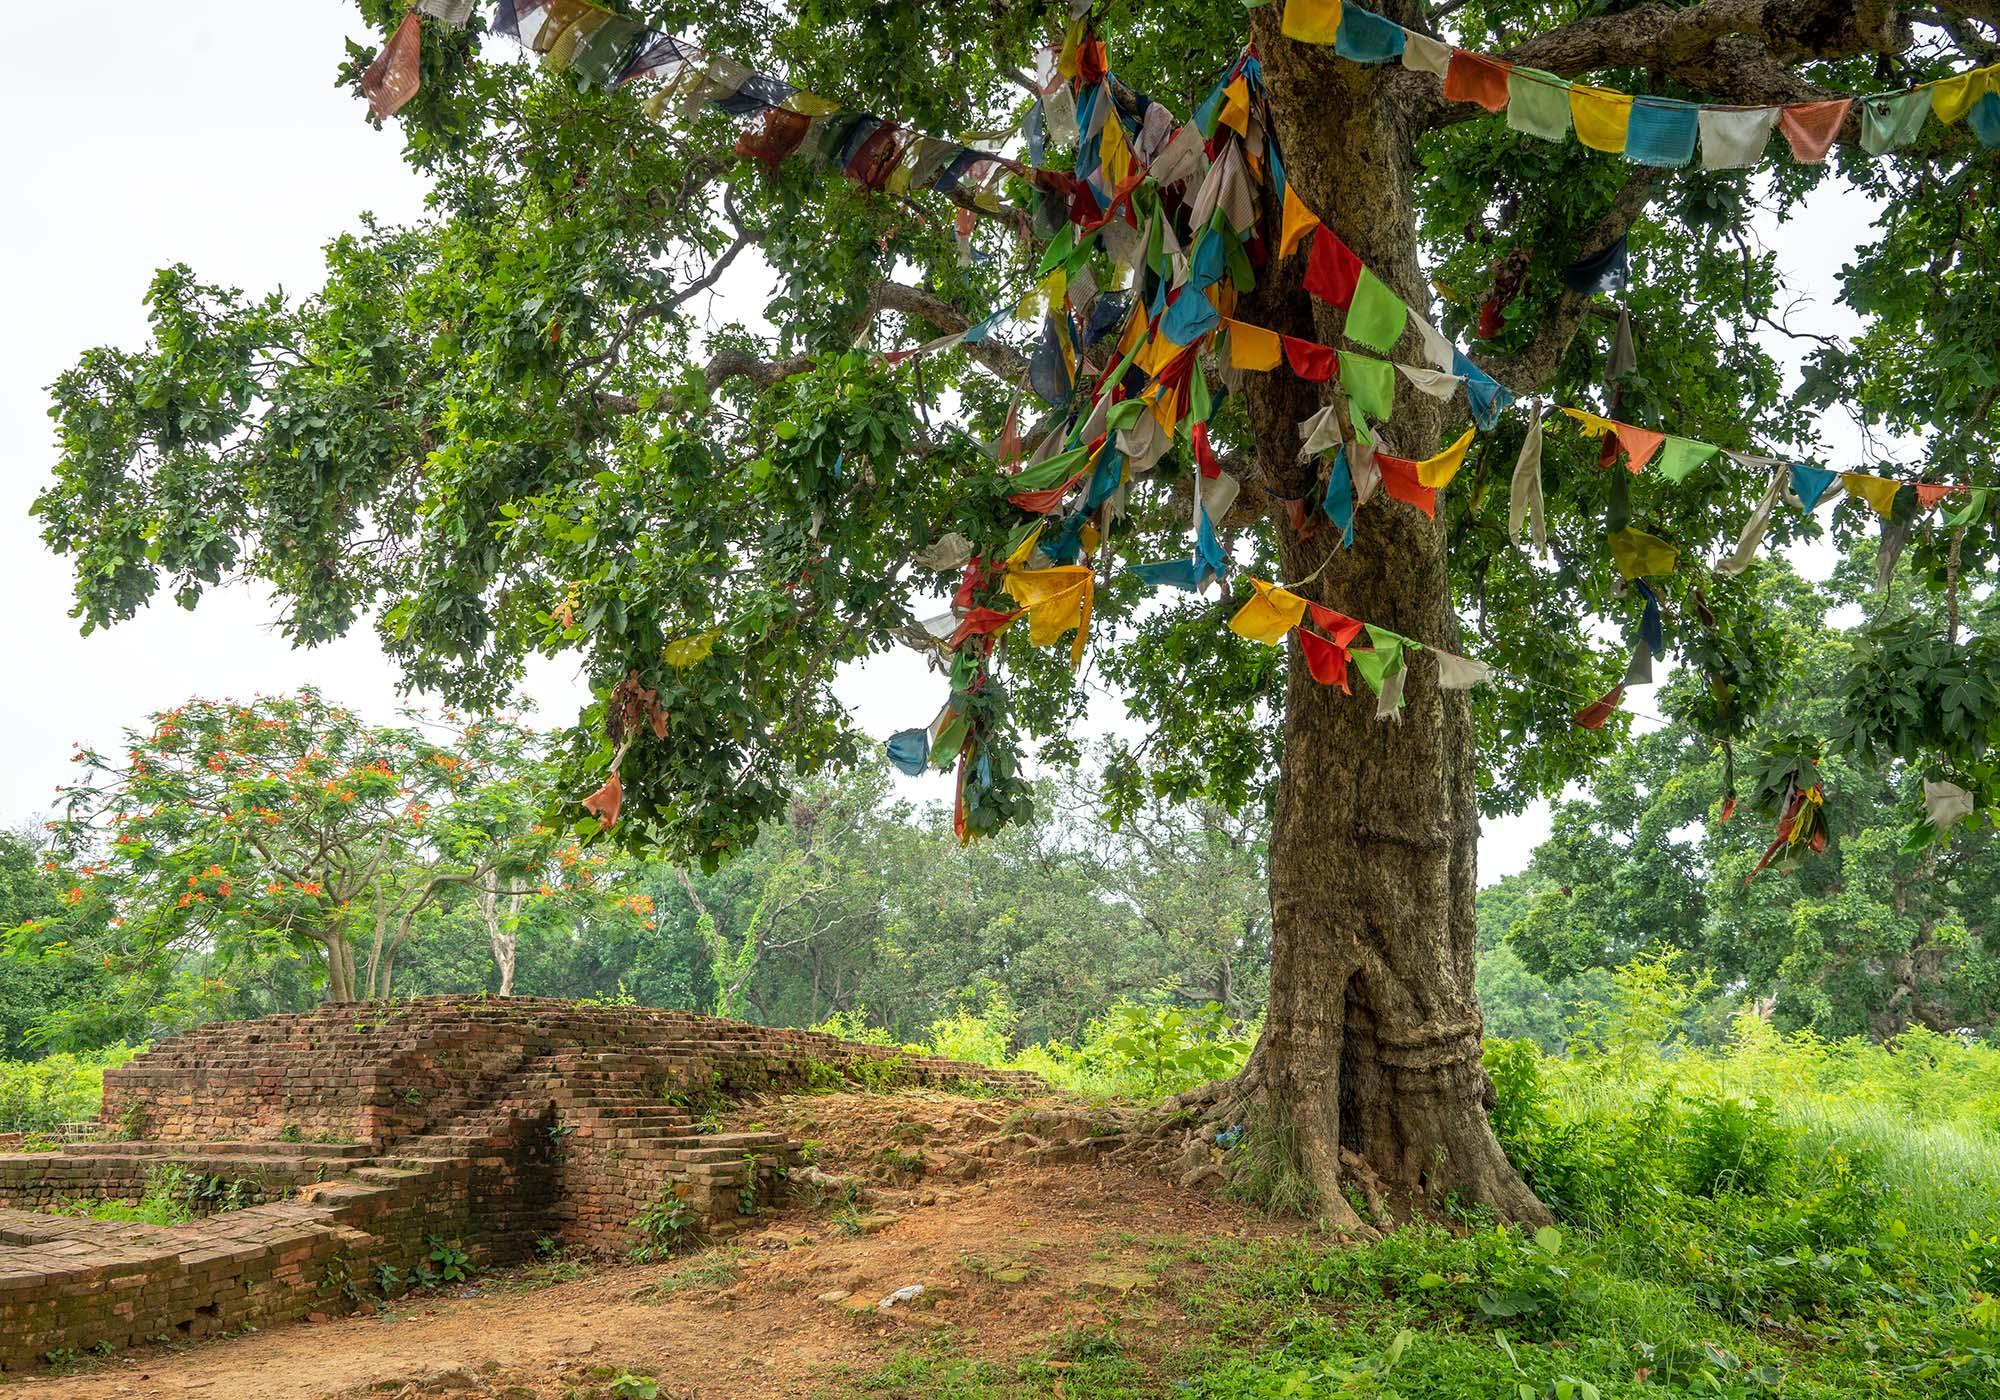 The archaeological site of the Ancient City of Kapilavastu, where Buddha spent his childhood and left at the age of 29 on his path to enlightenment. – © Michael Turtle